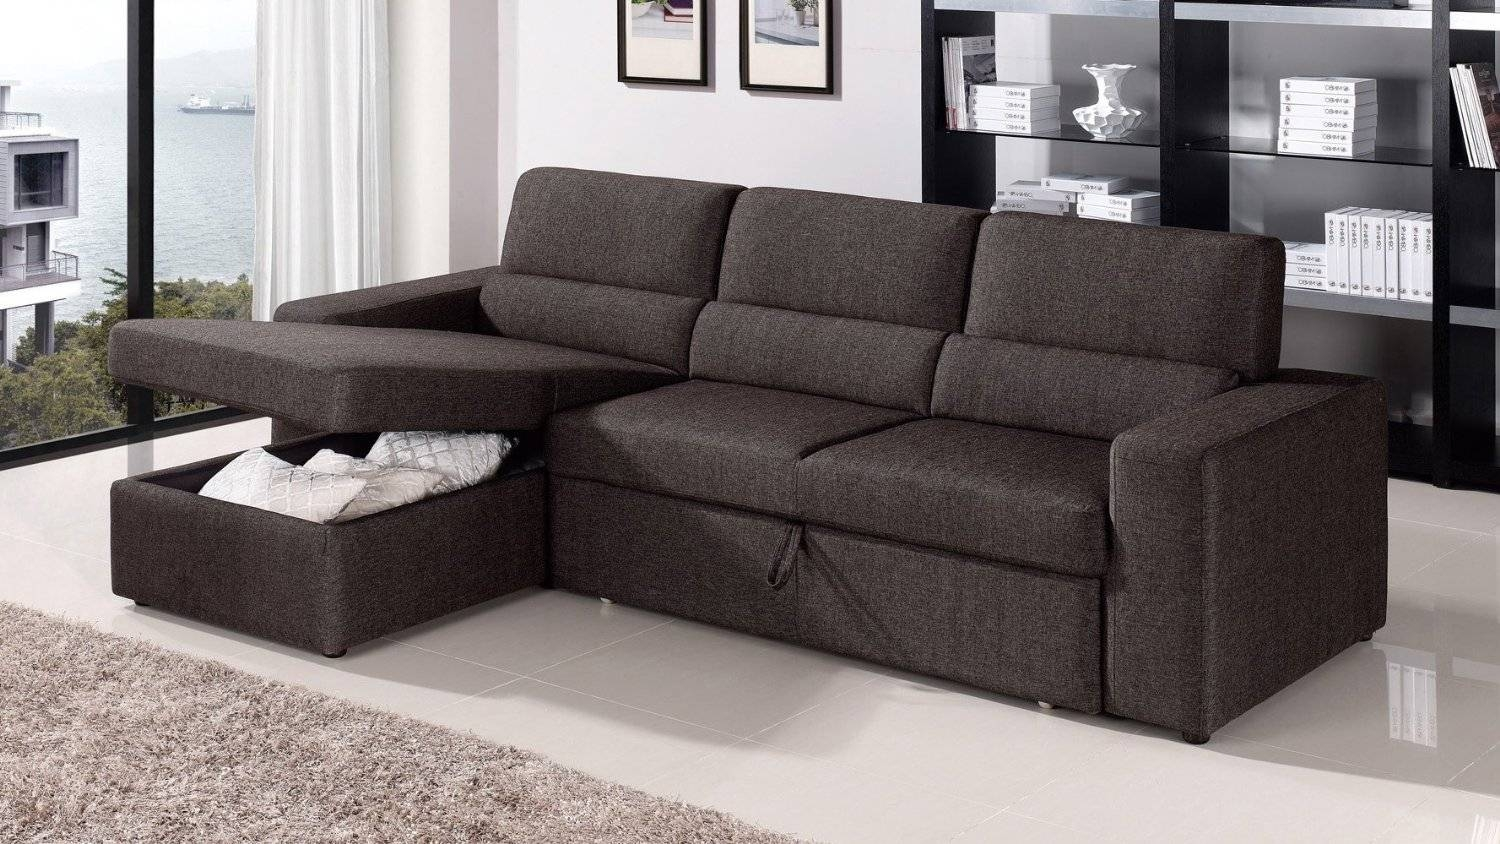 Sofa Sleeper With Chaise Lounge - Ansugallery regarding Sofa Beds With Chaise Lounge (Image 12 of 15)